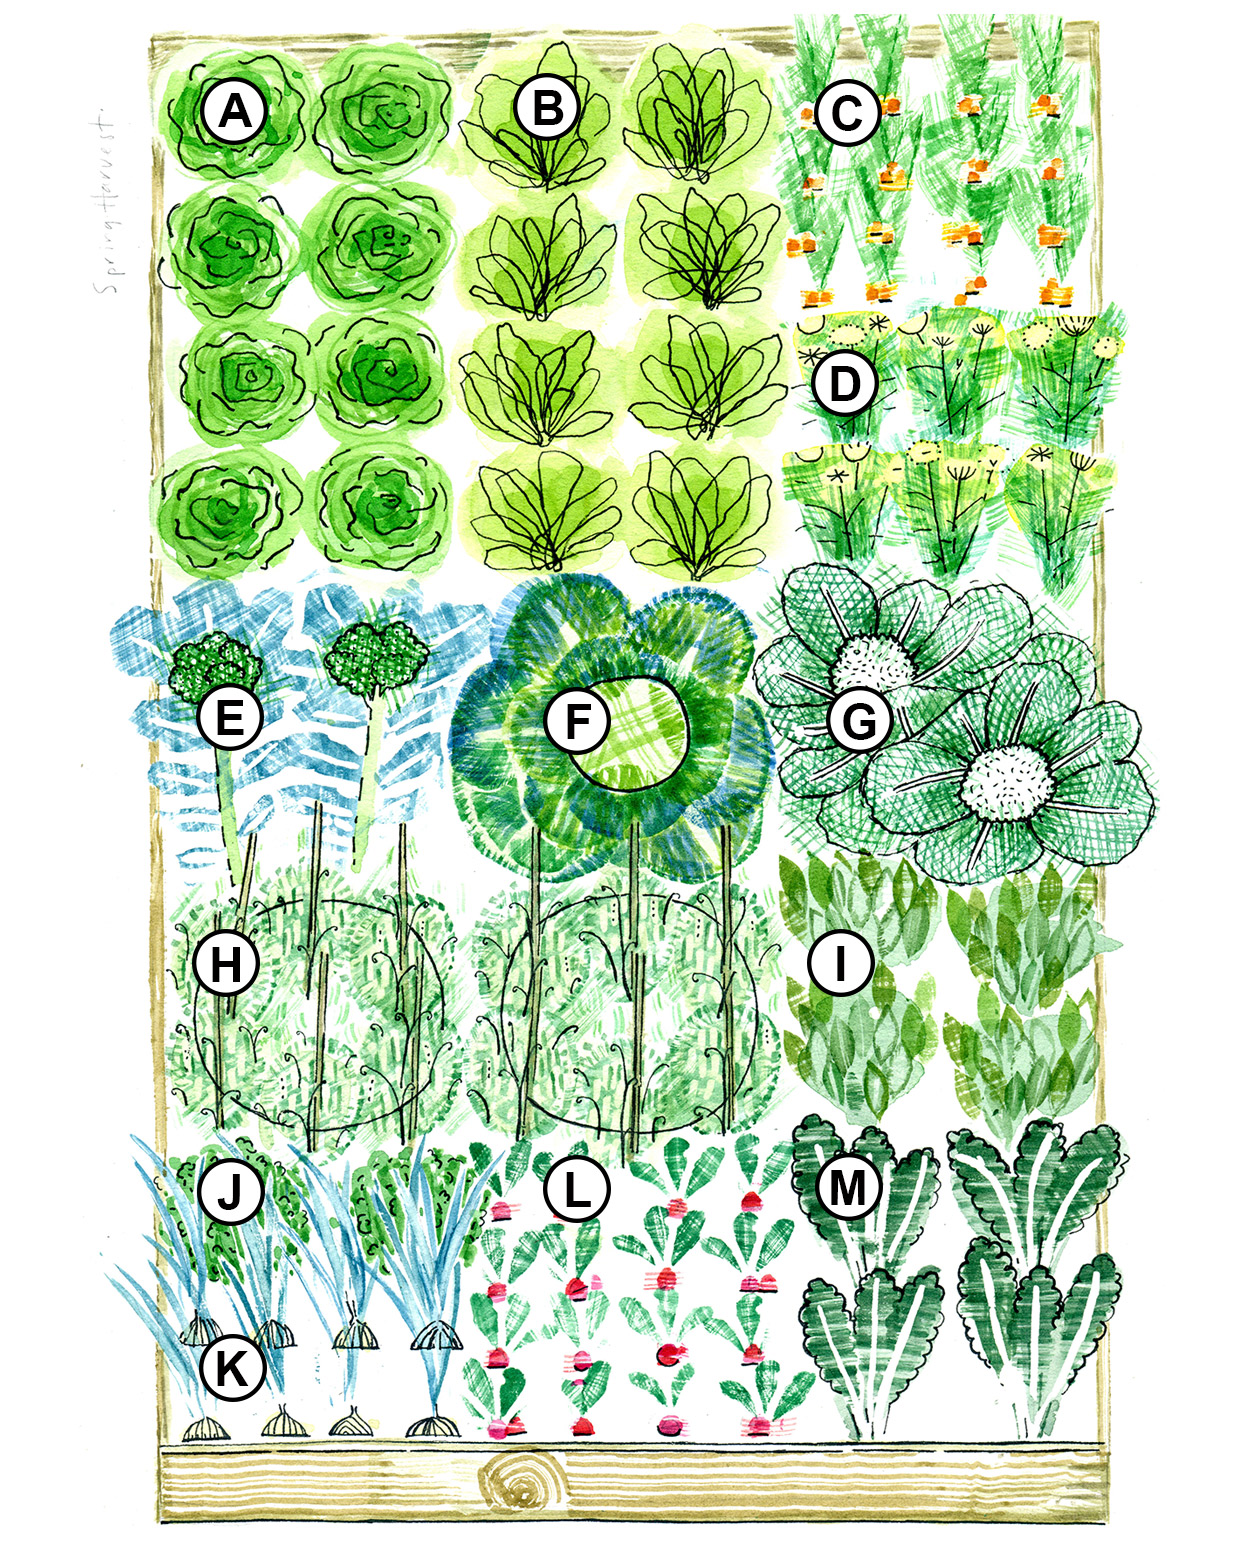 spring raised-bed garden plan